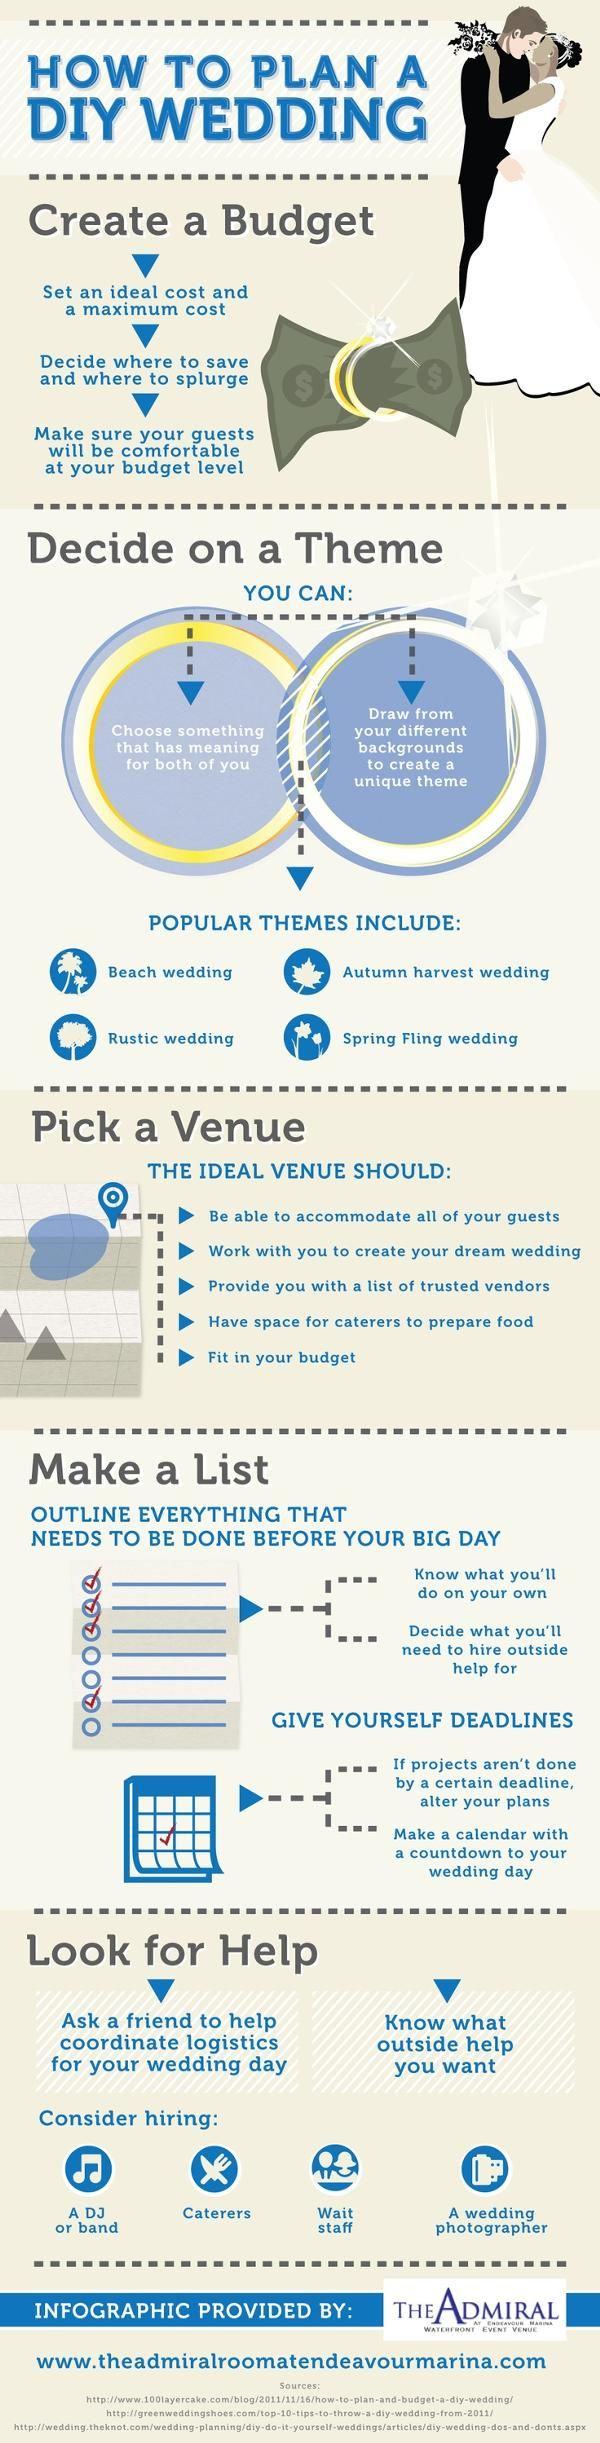 Cheat Sheet on How to Plan a DIY Wedding, super easy to follow! {weddings.wikia}  #DIY #Weddingseason